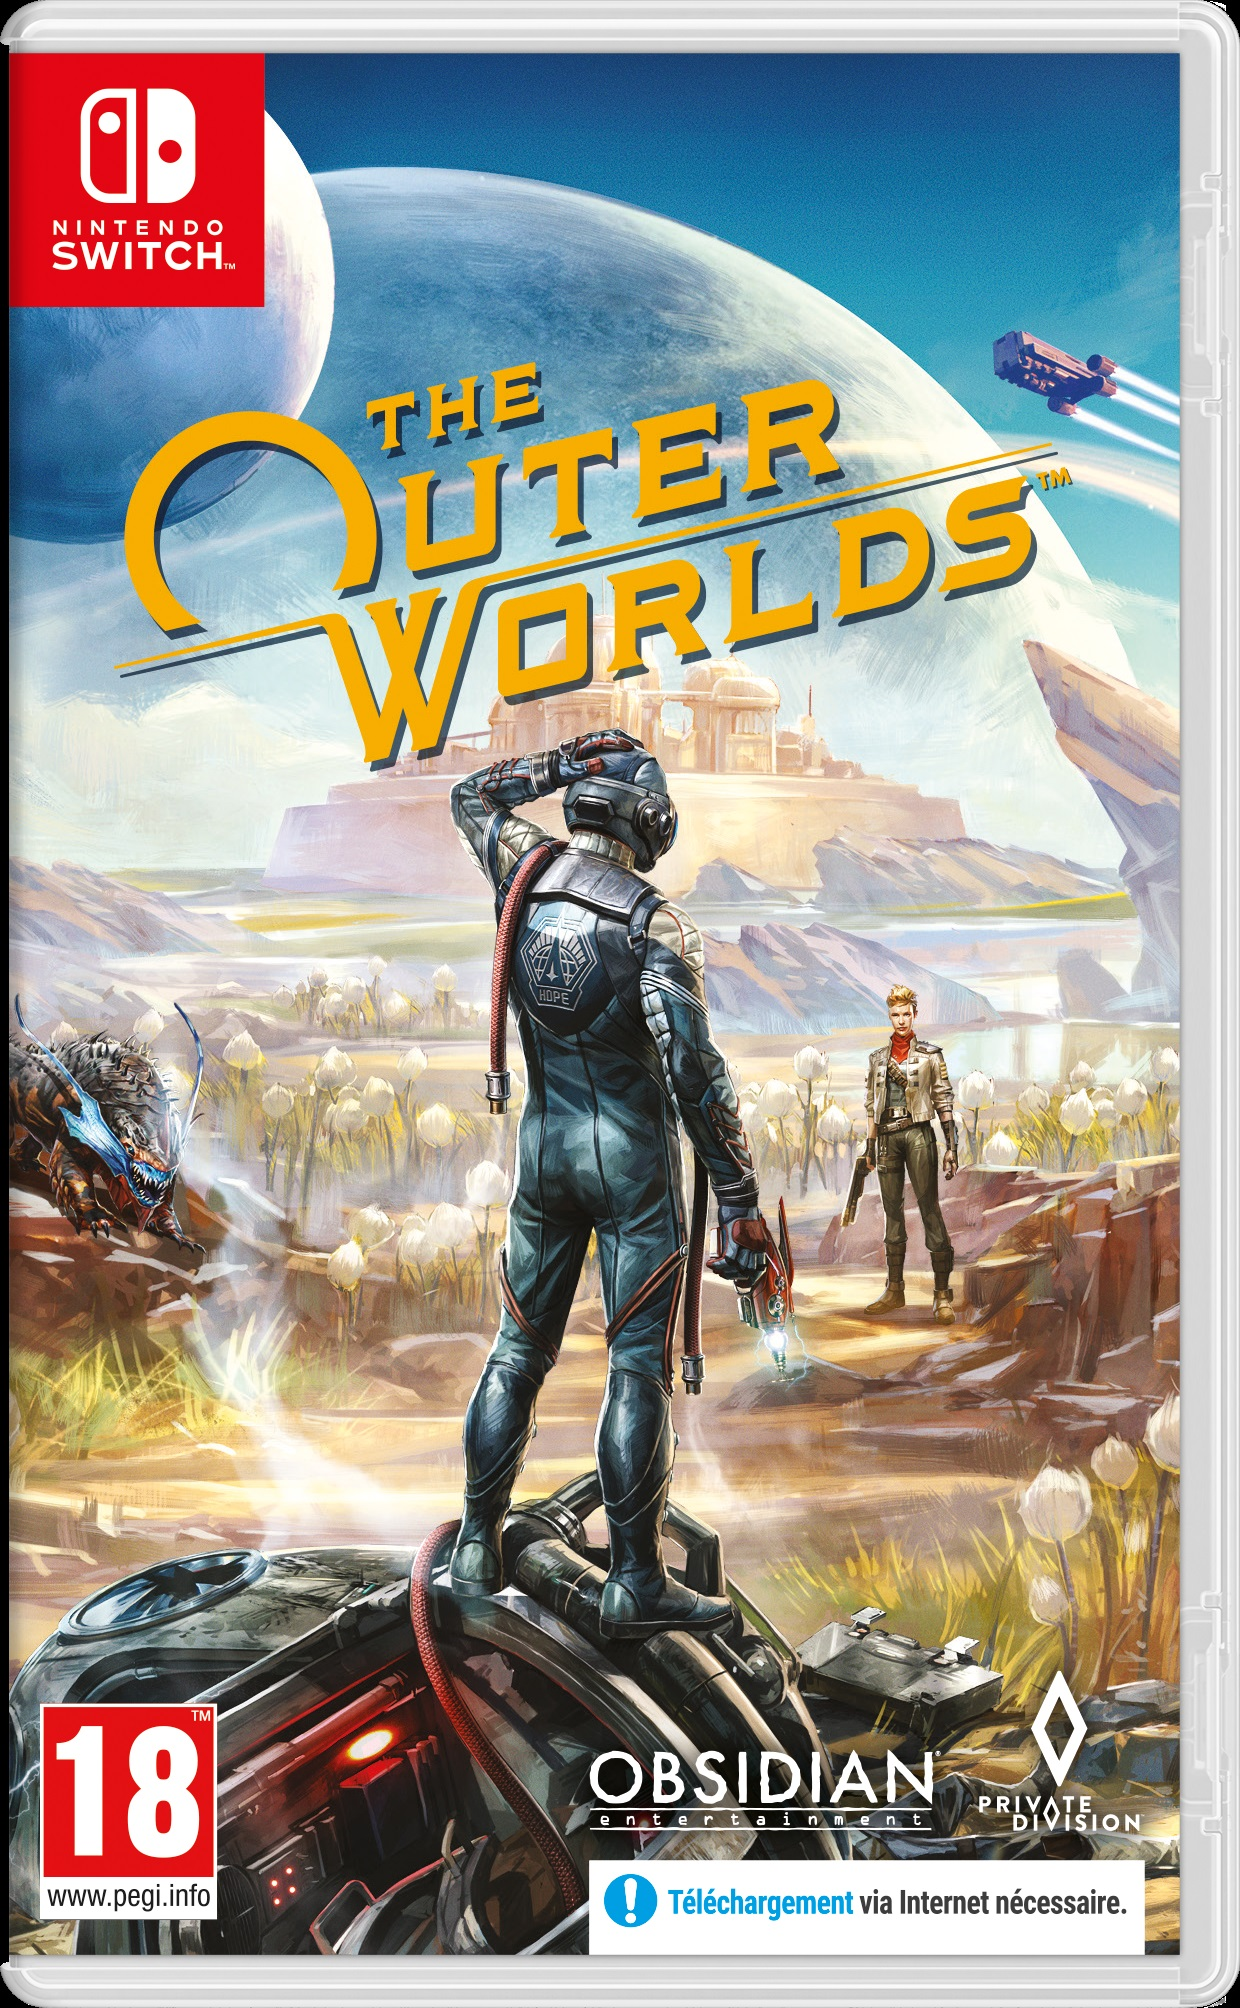 Retrouvez notre TEST : The Outer Worlds - Nintendo Switch